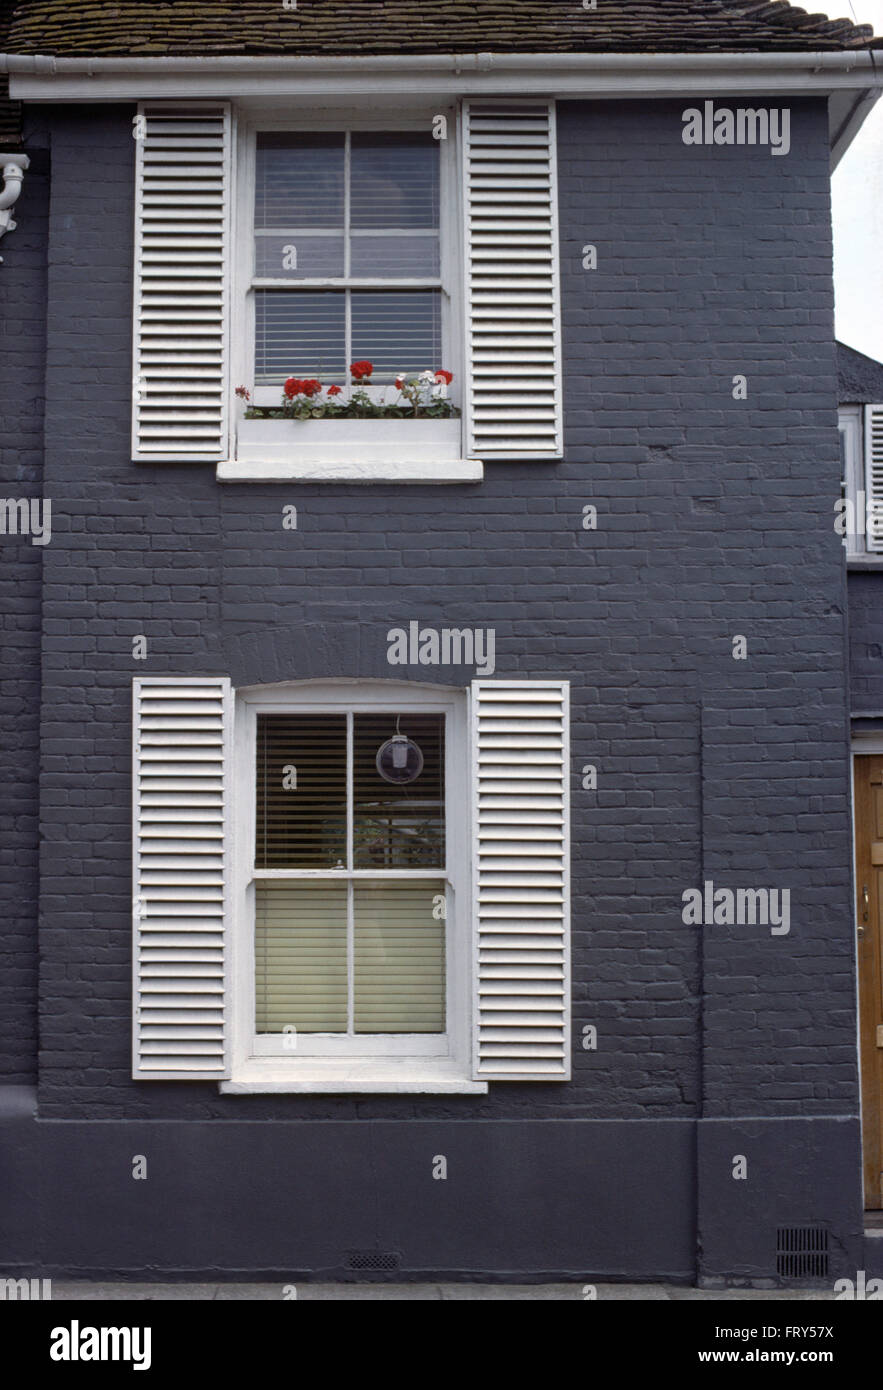 Exterior Of Blue House With White Louvre Shutters On The